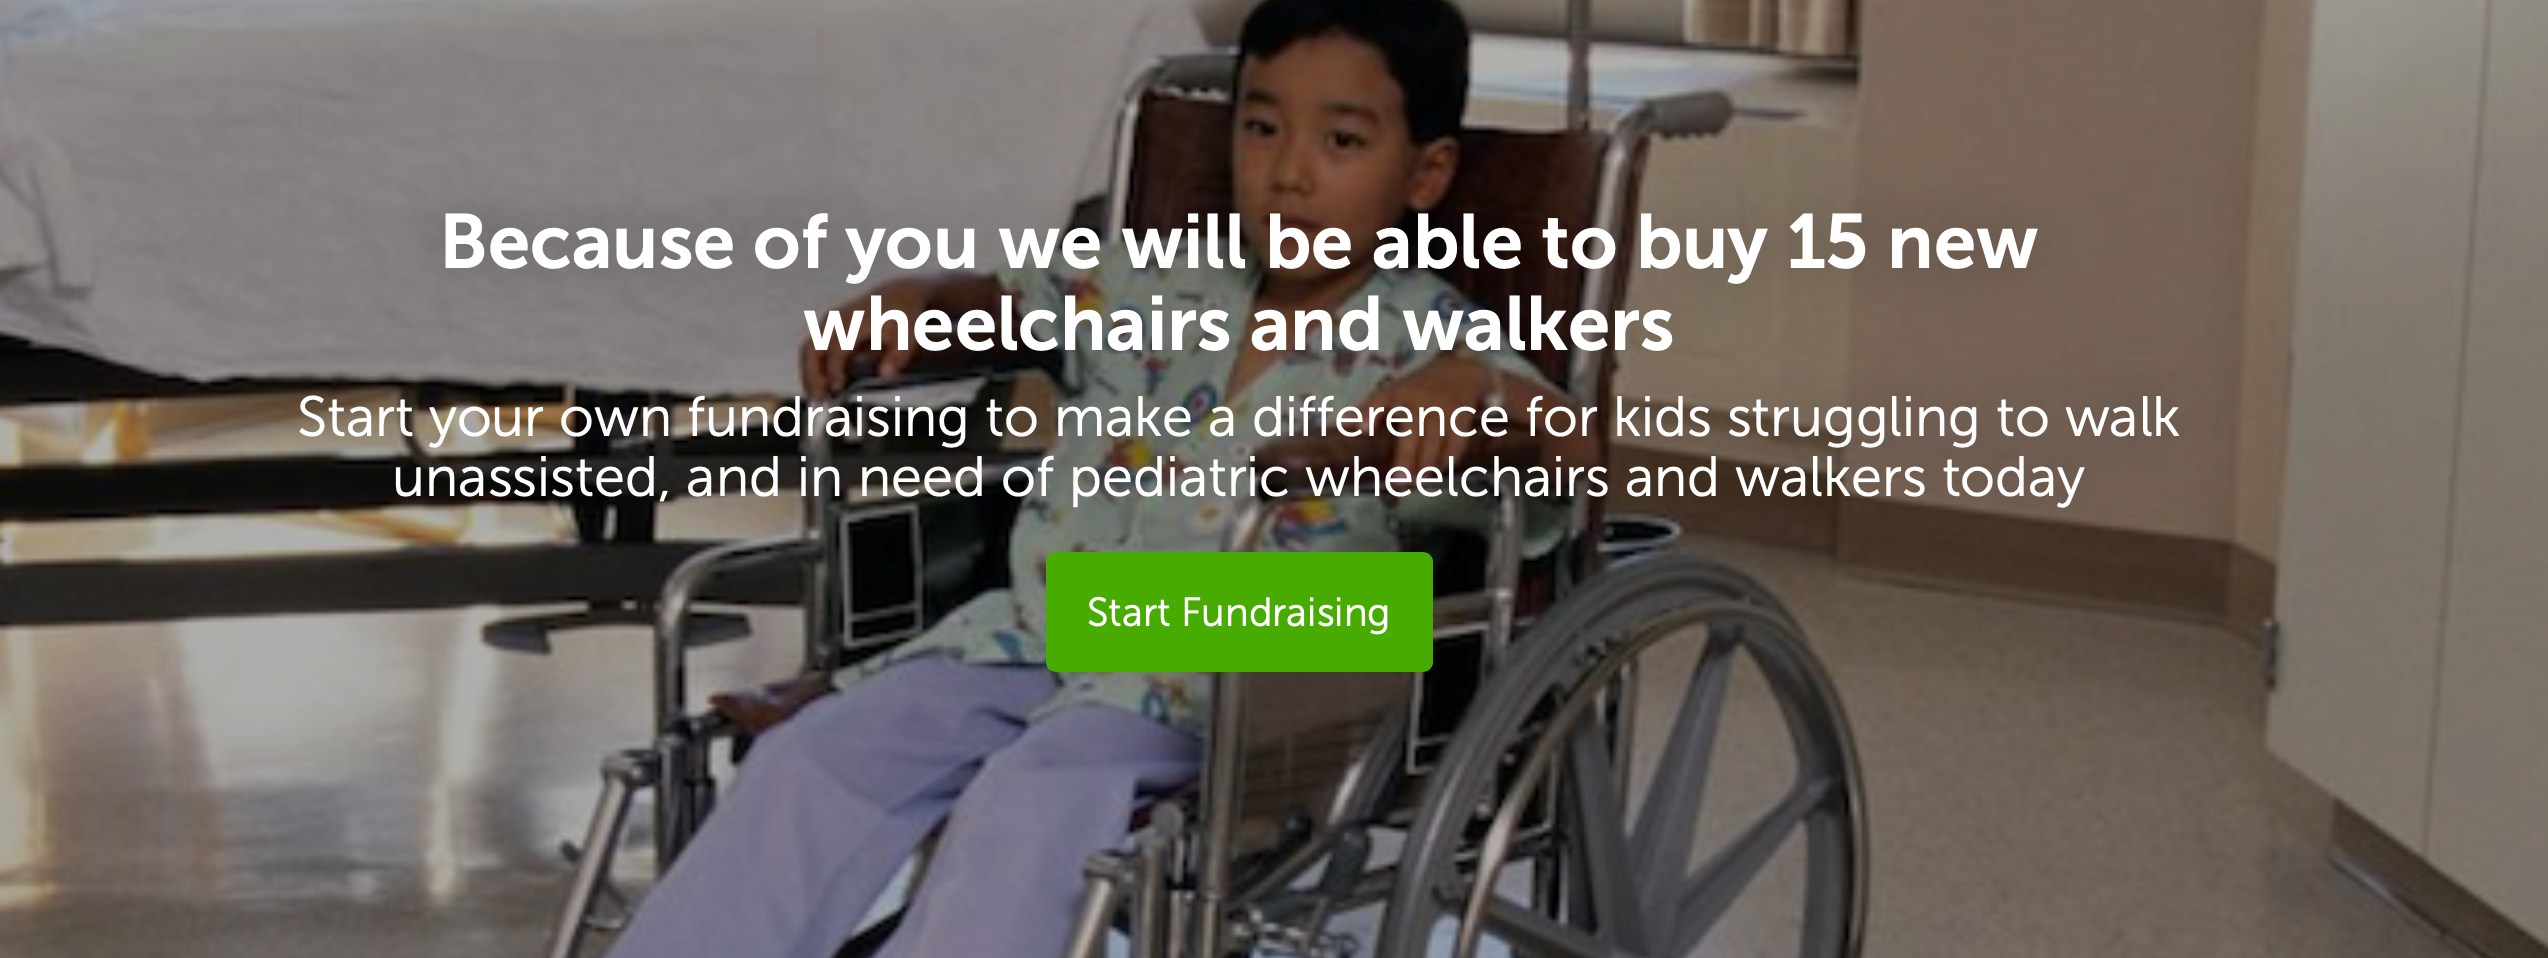 <b>HELP US RAISE MONEY TO BUY WHEELCHAIRS AND WALKERS FOR SICK KIDS</b>